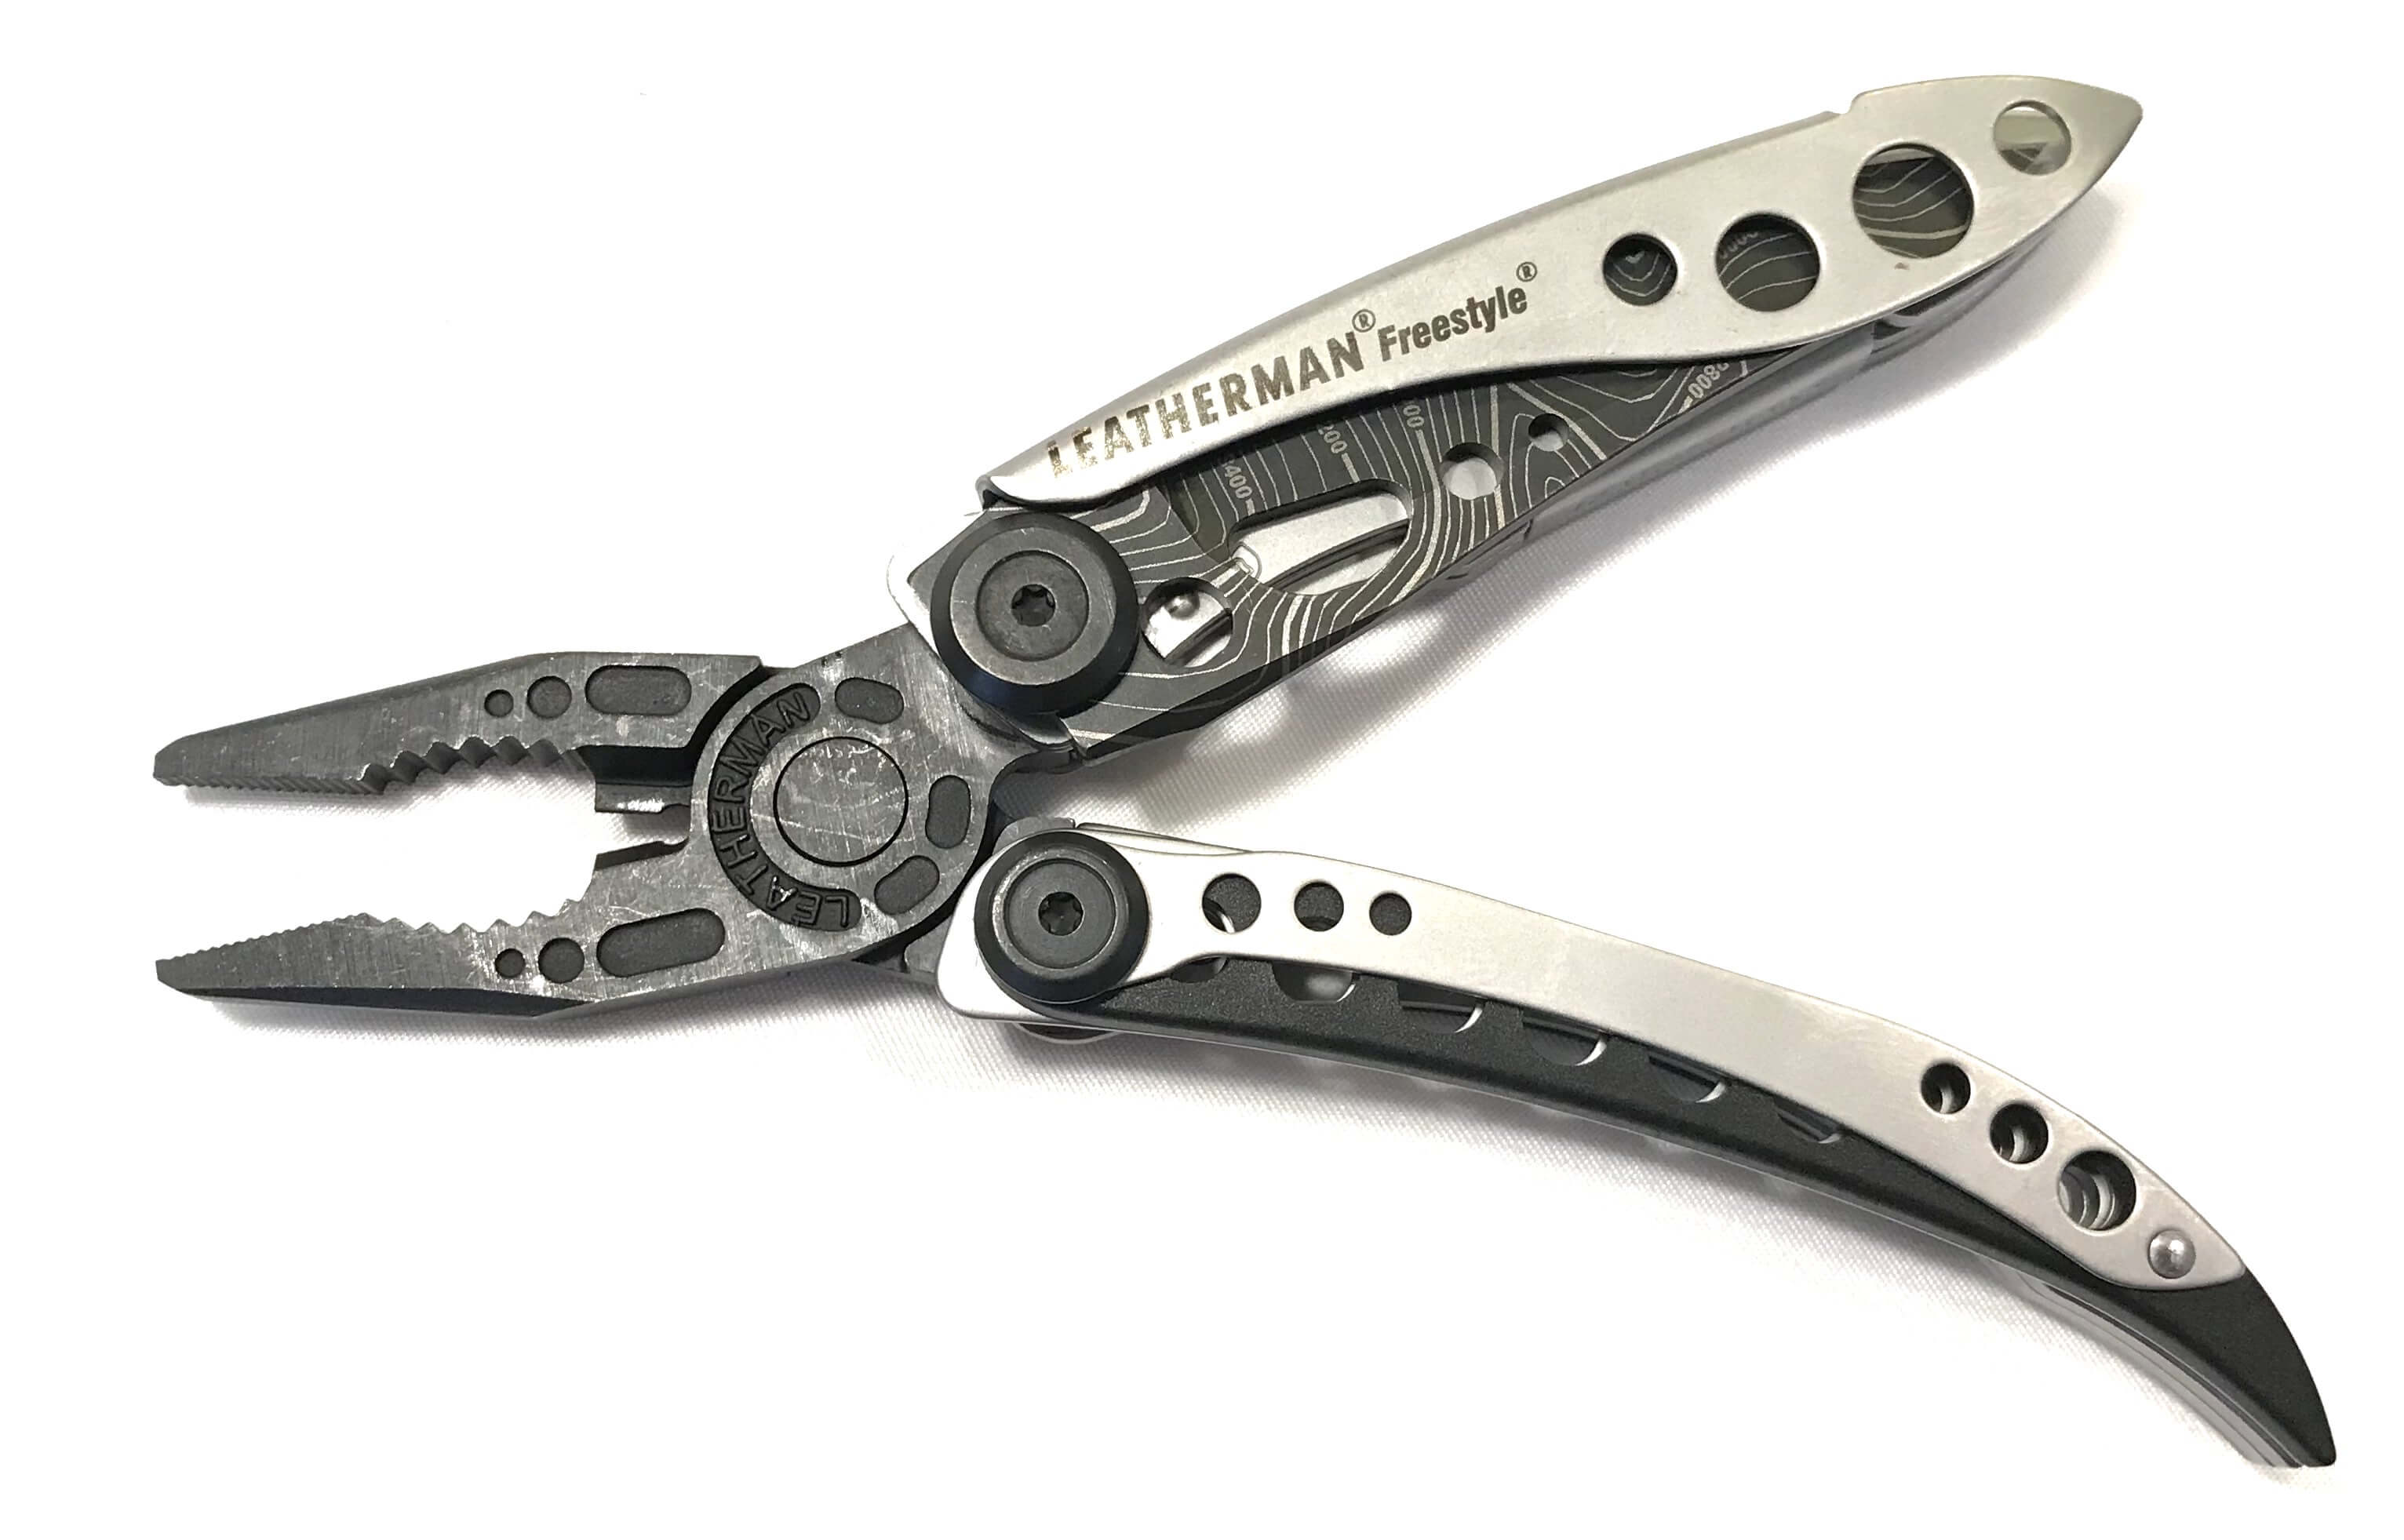 leatherman freestyle multi tool review